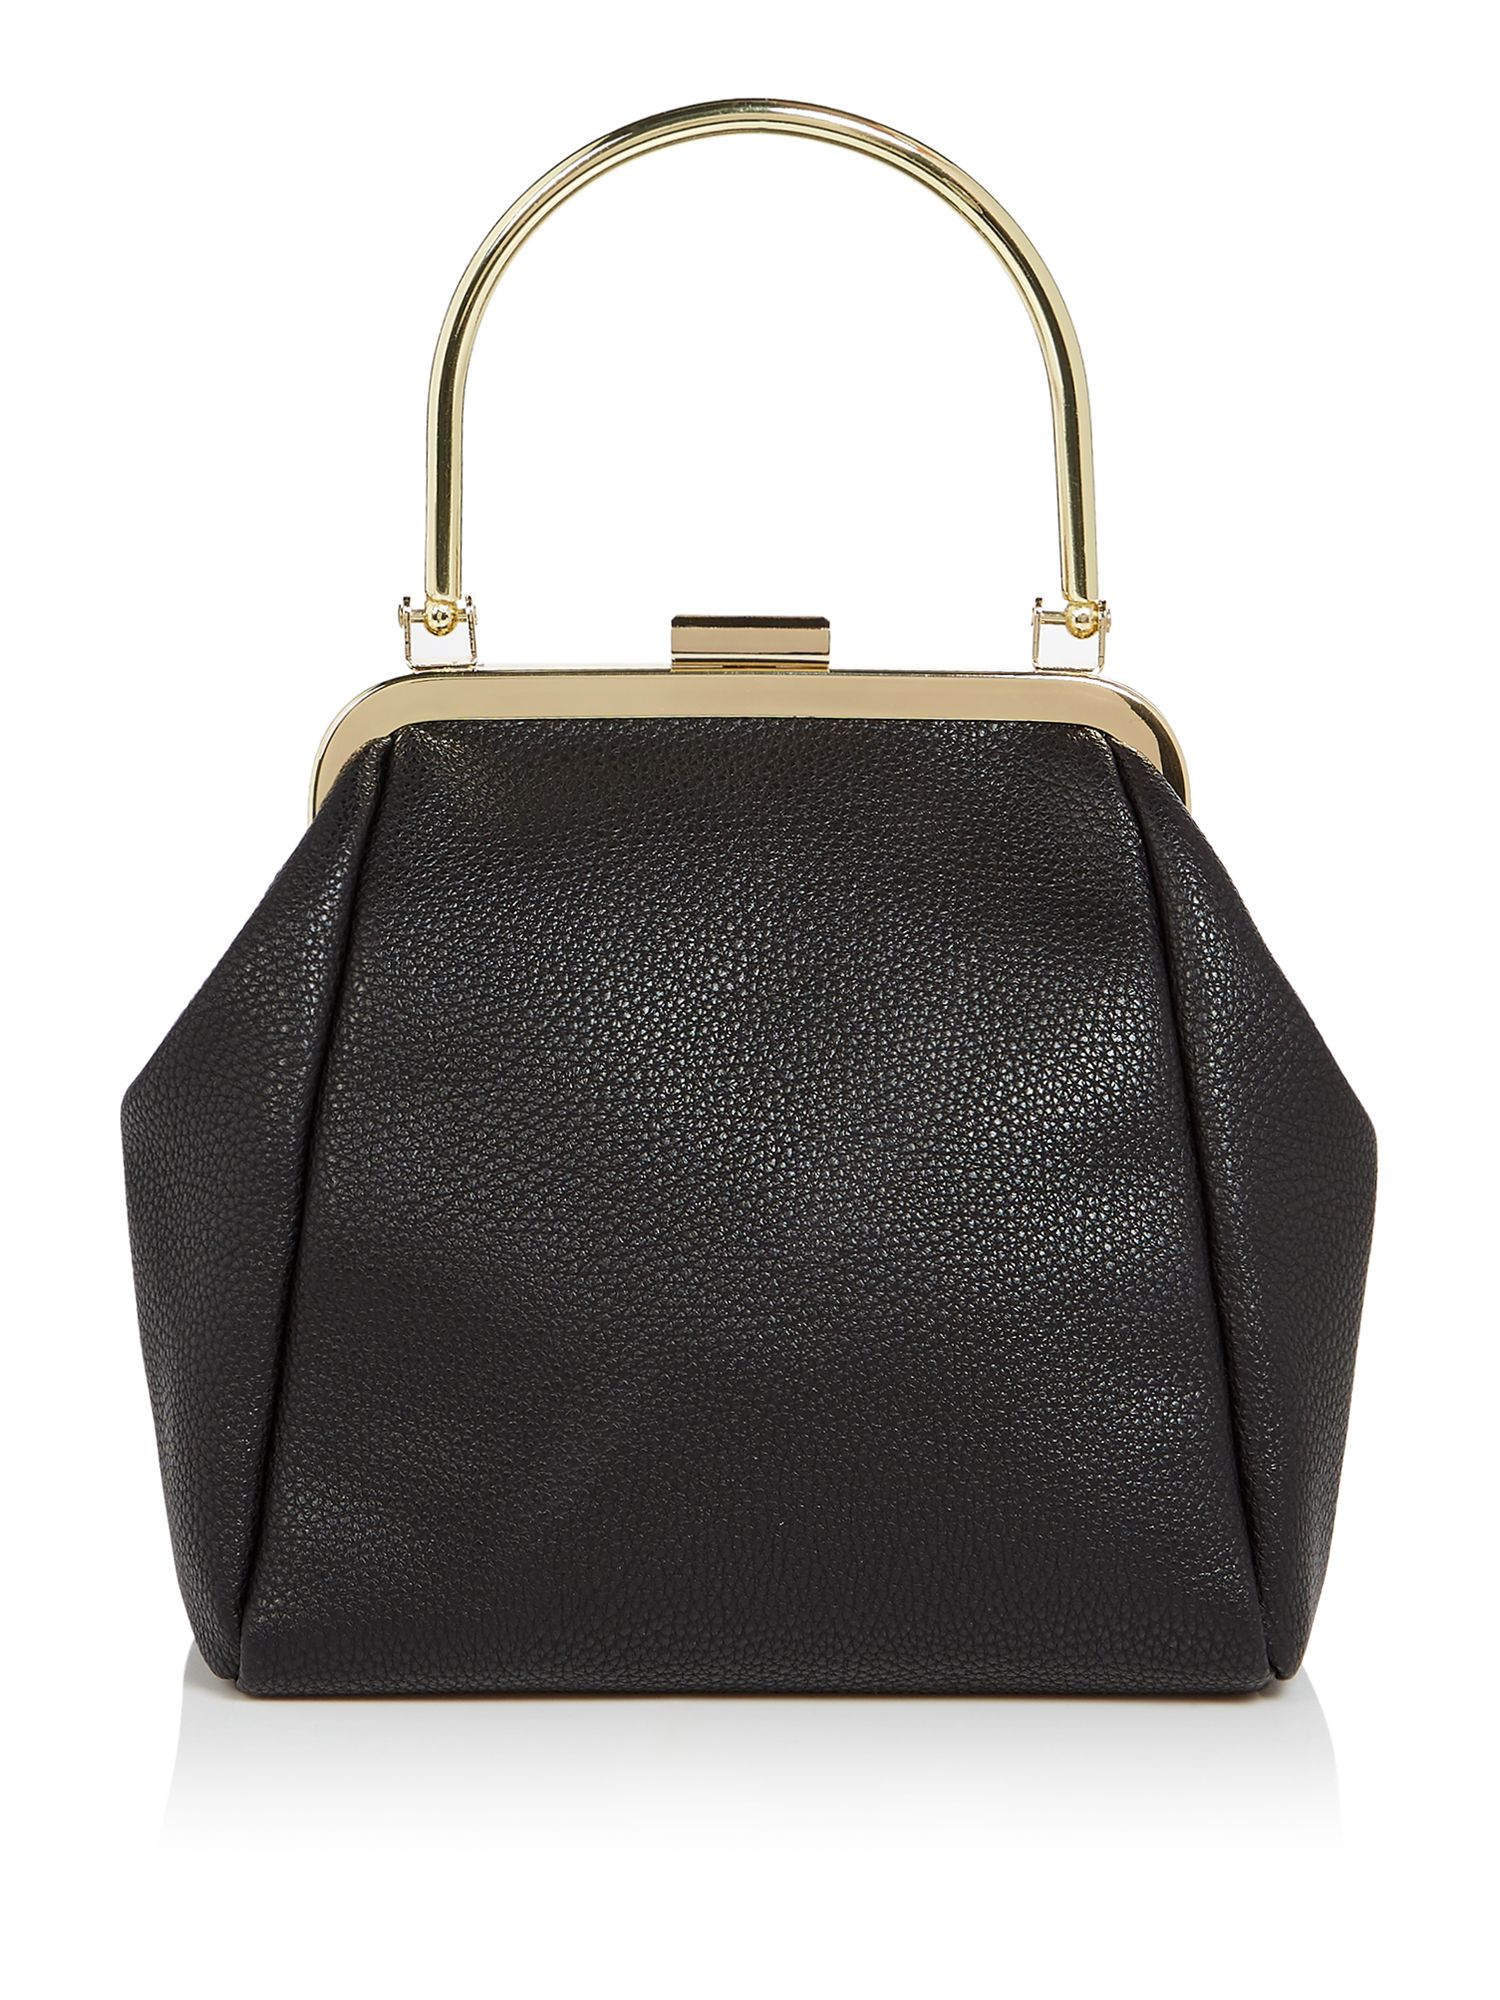 Therapy Ami occasion frame bag, Black